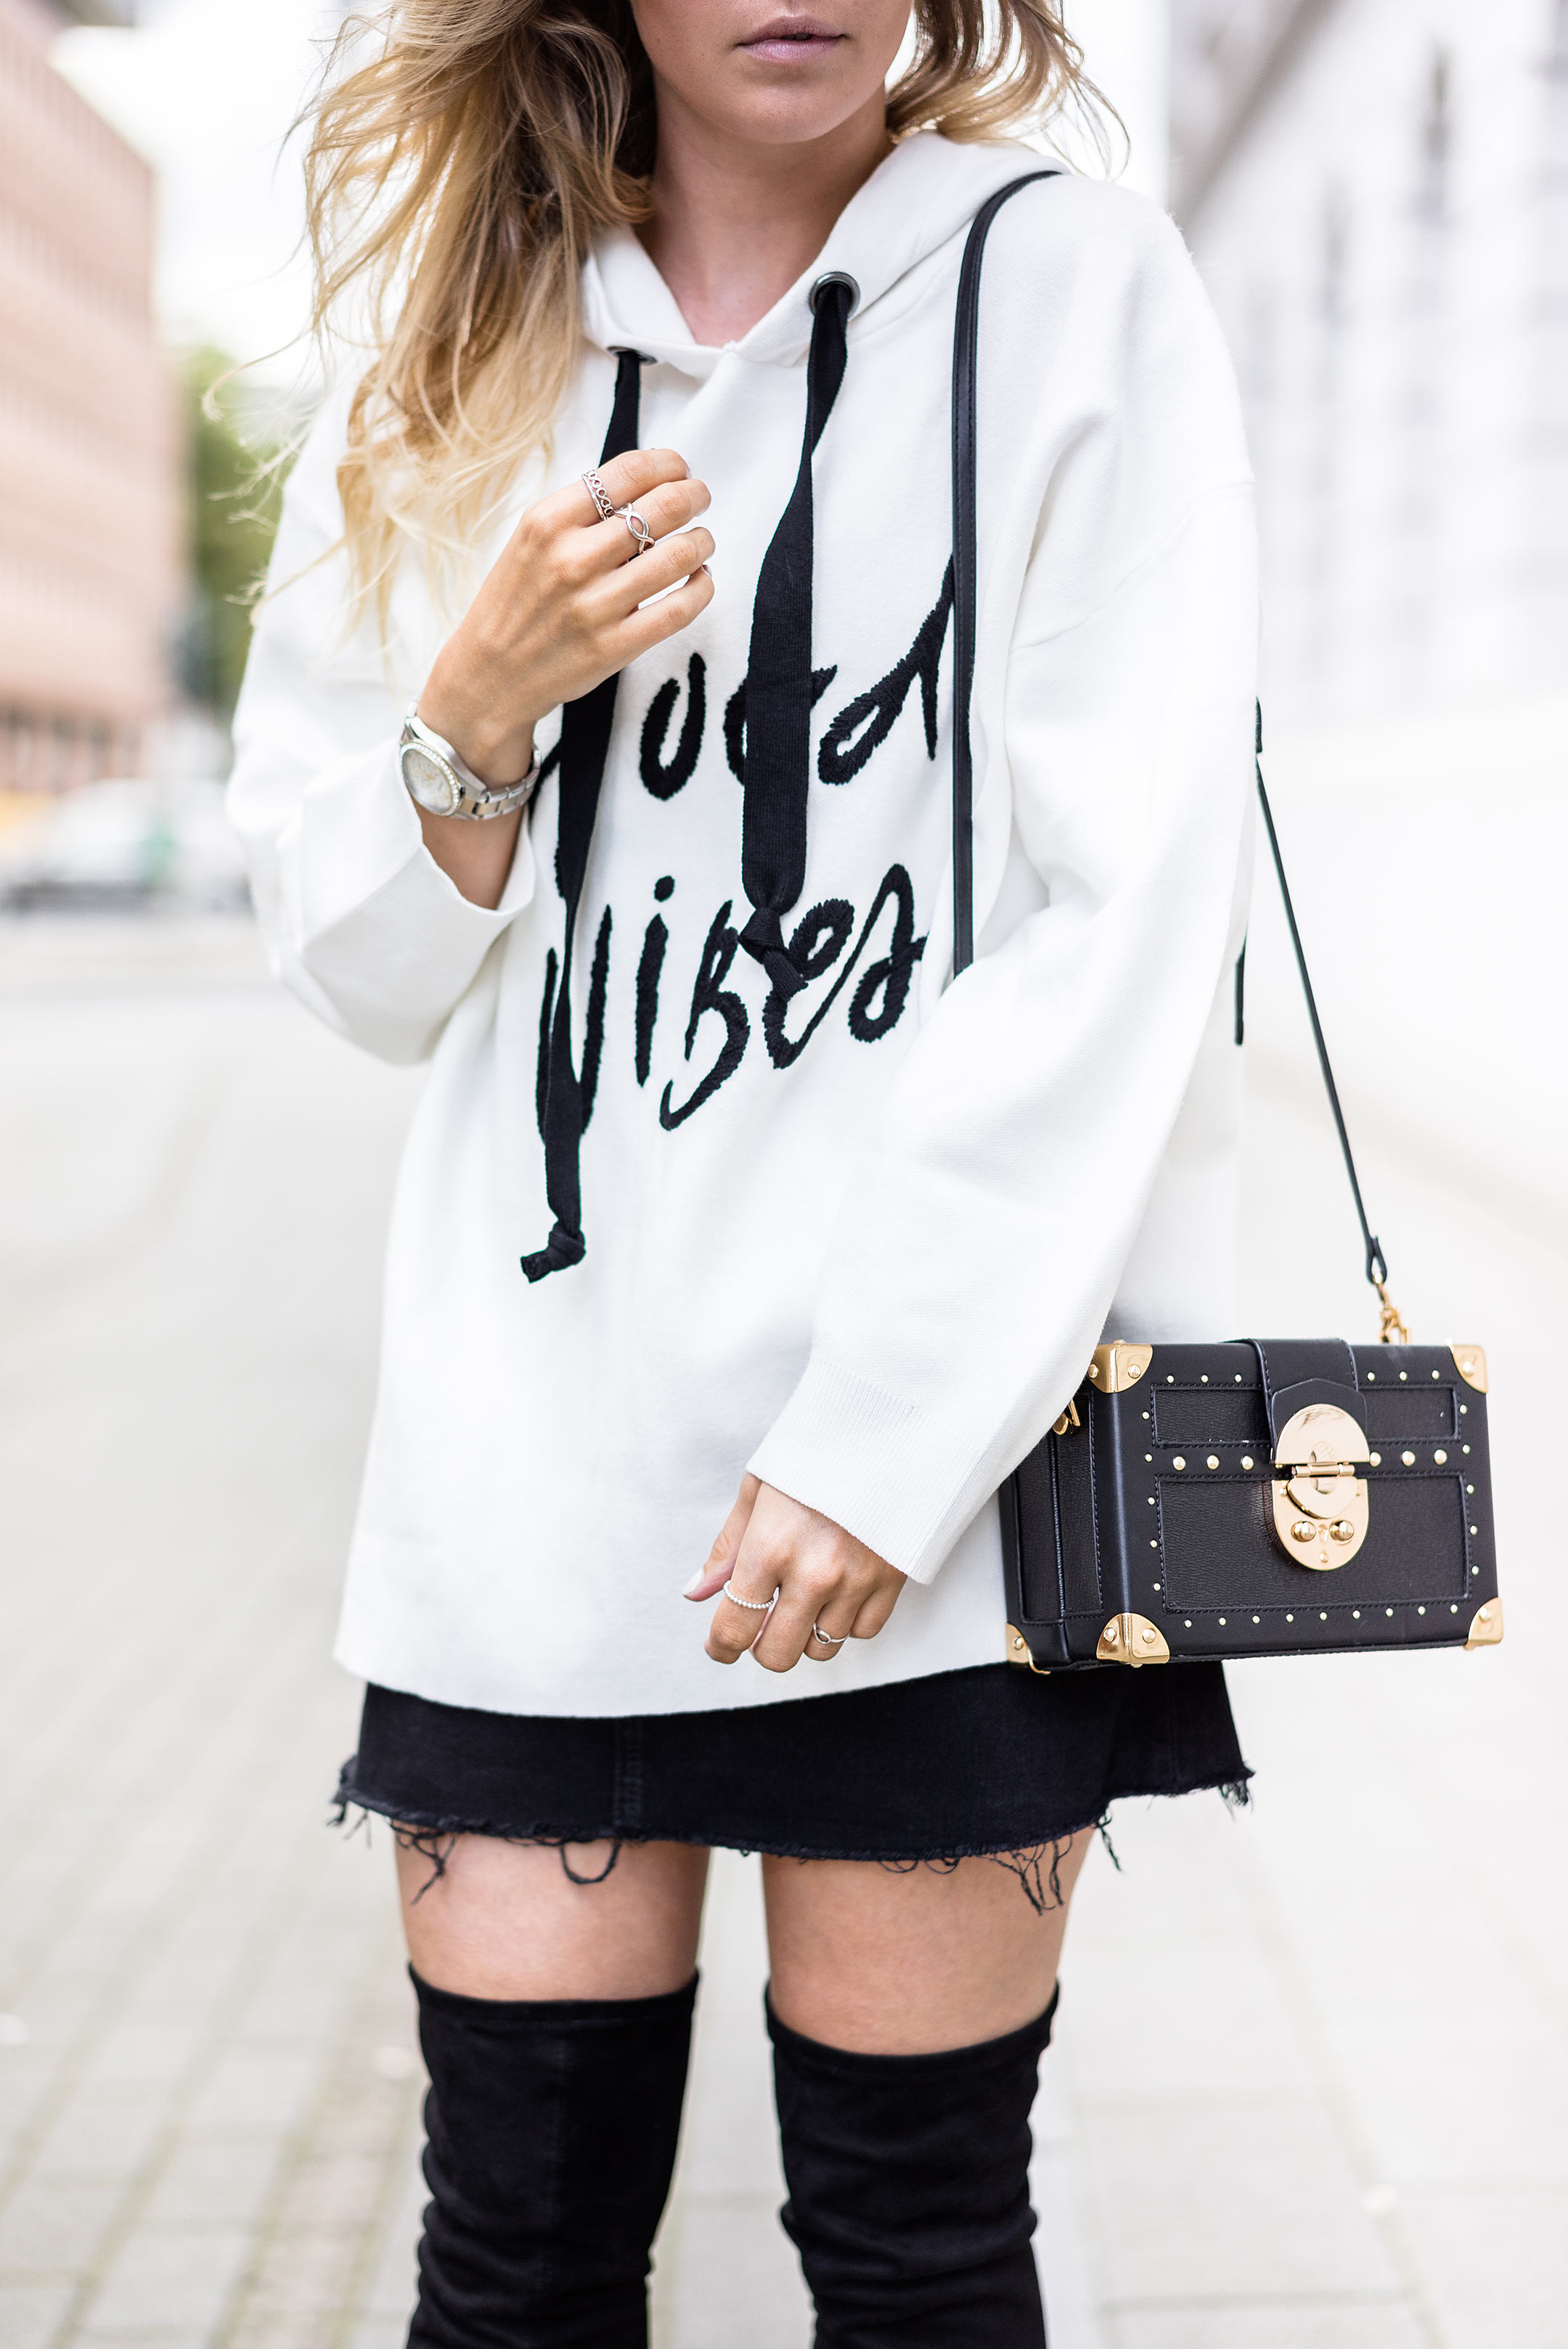 Sweater Oversize Rock Outfit Fashionblog Sunnyinga